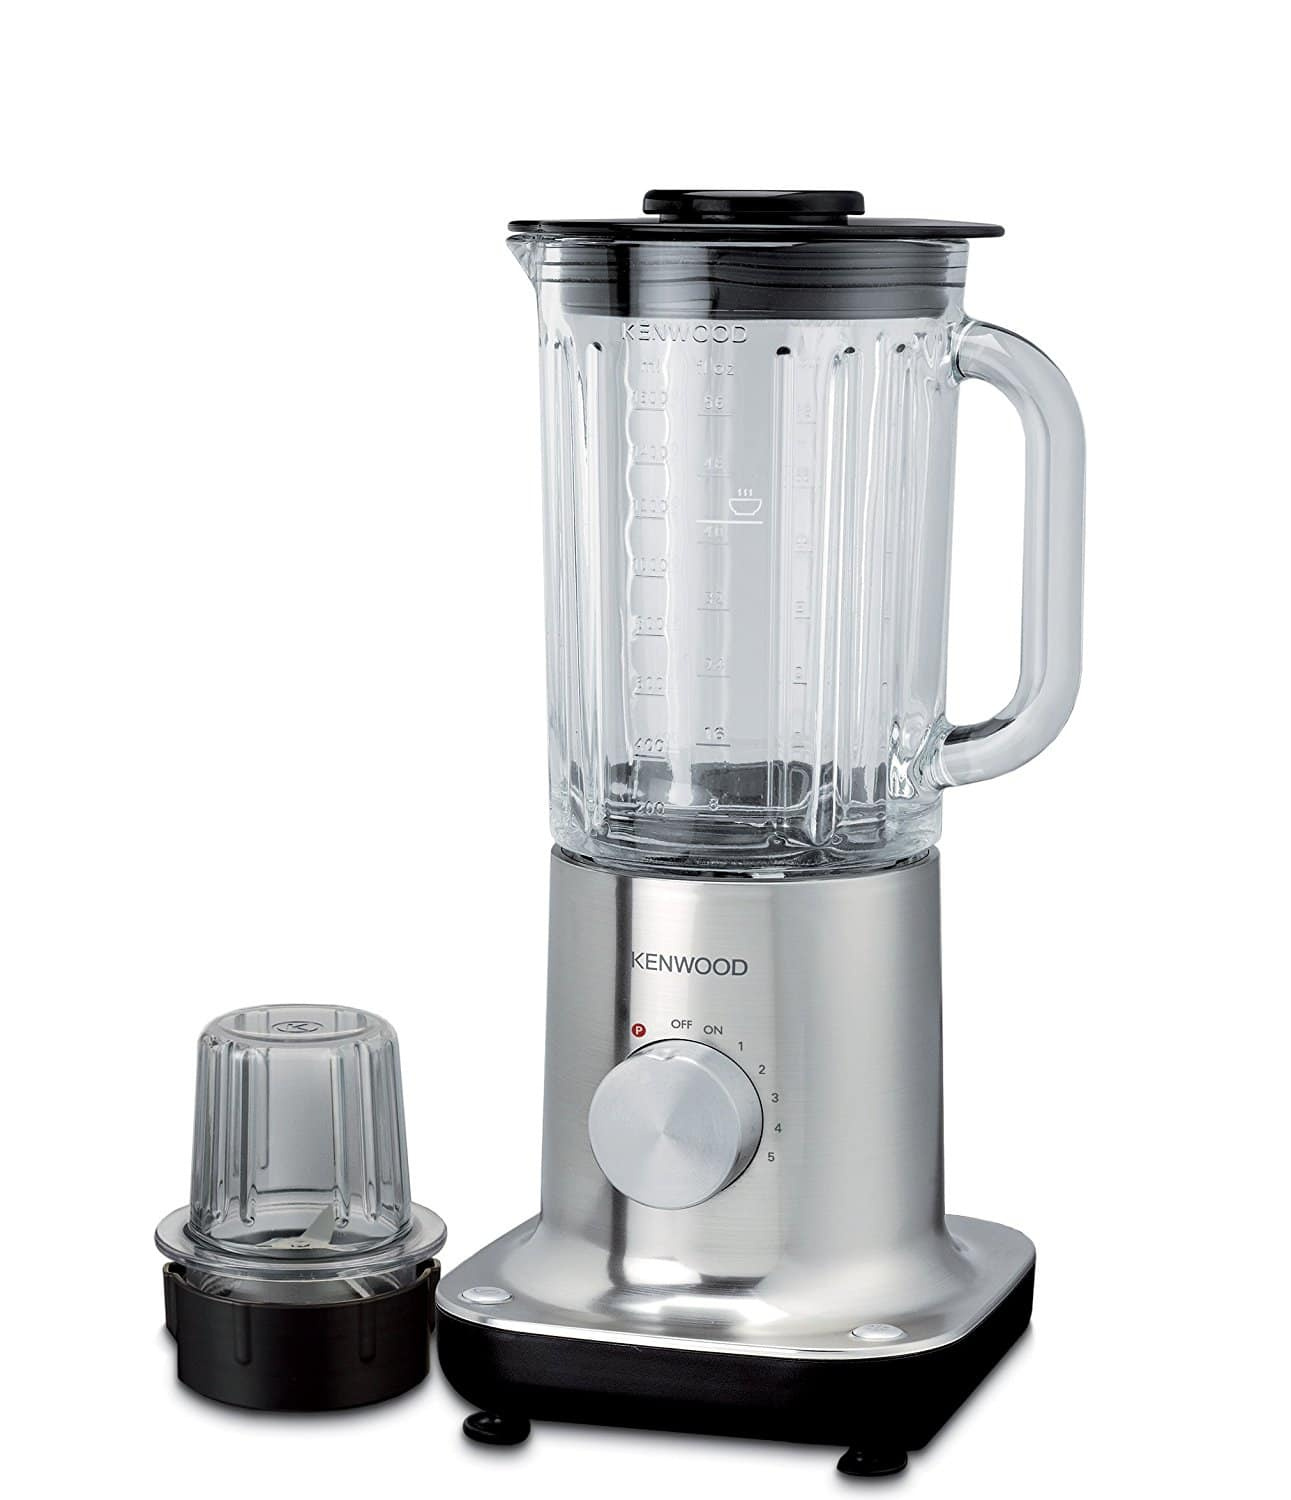 Kenwood BL705 ThermoResist Blender, Black $43